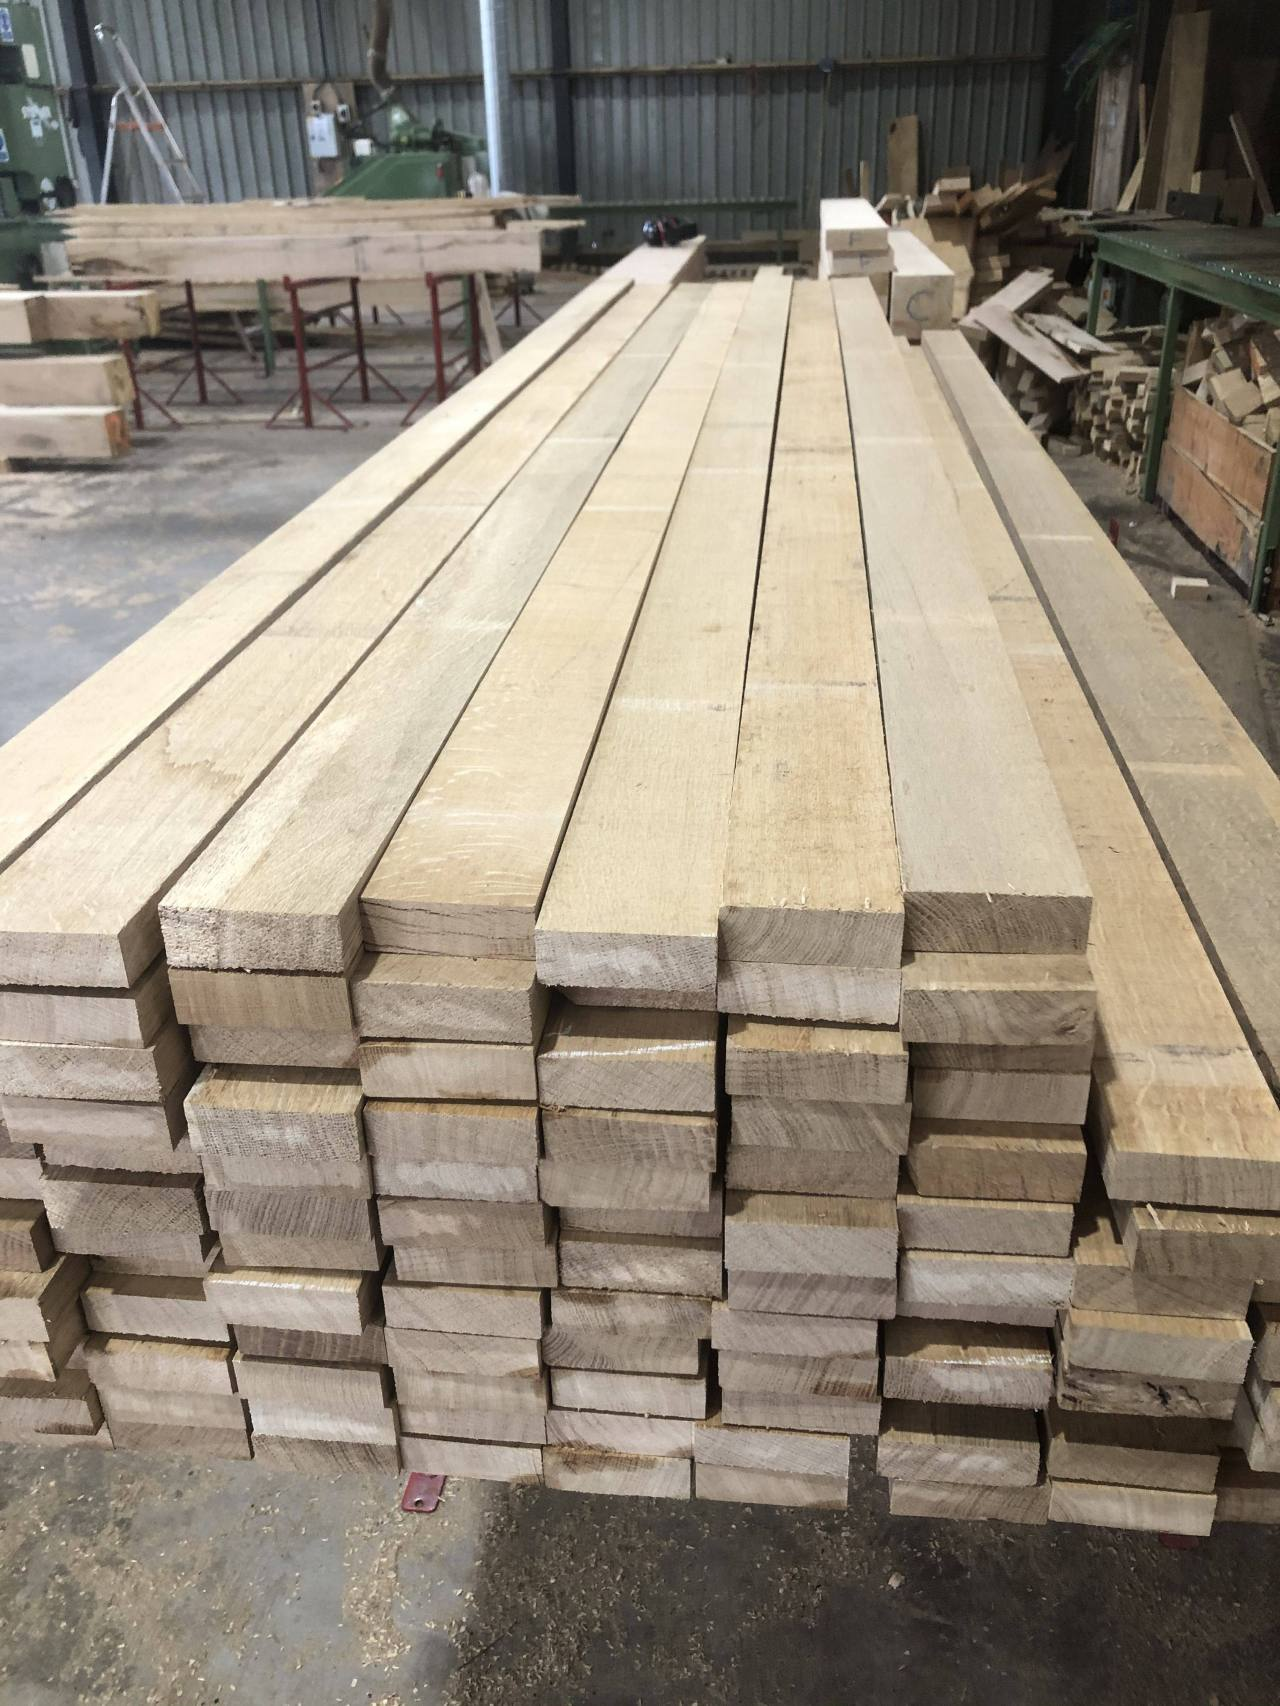 Image for: 28mm Quarter Sawn Oak